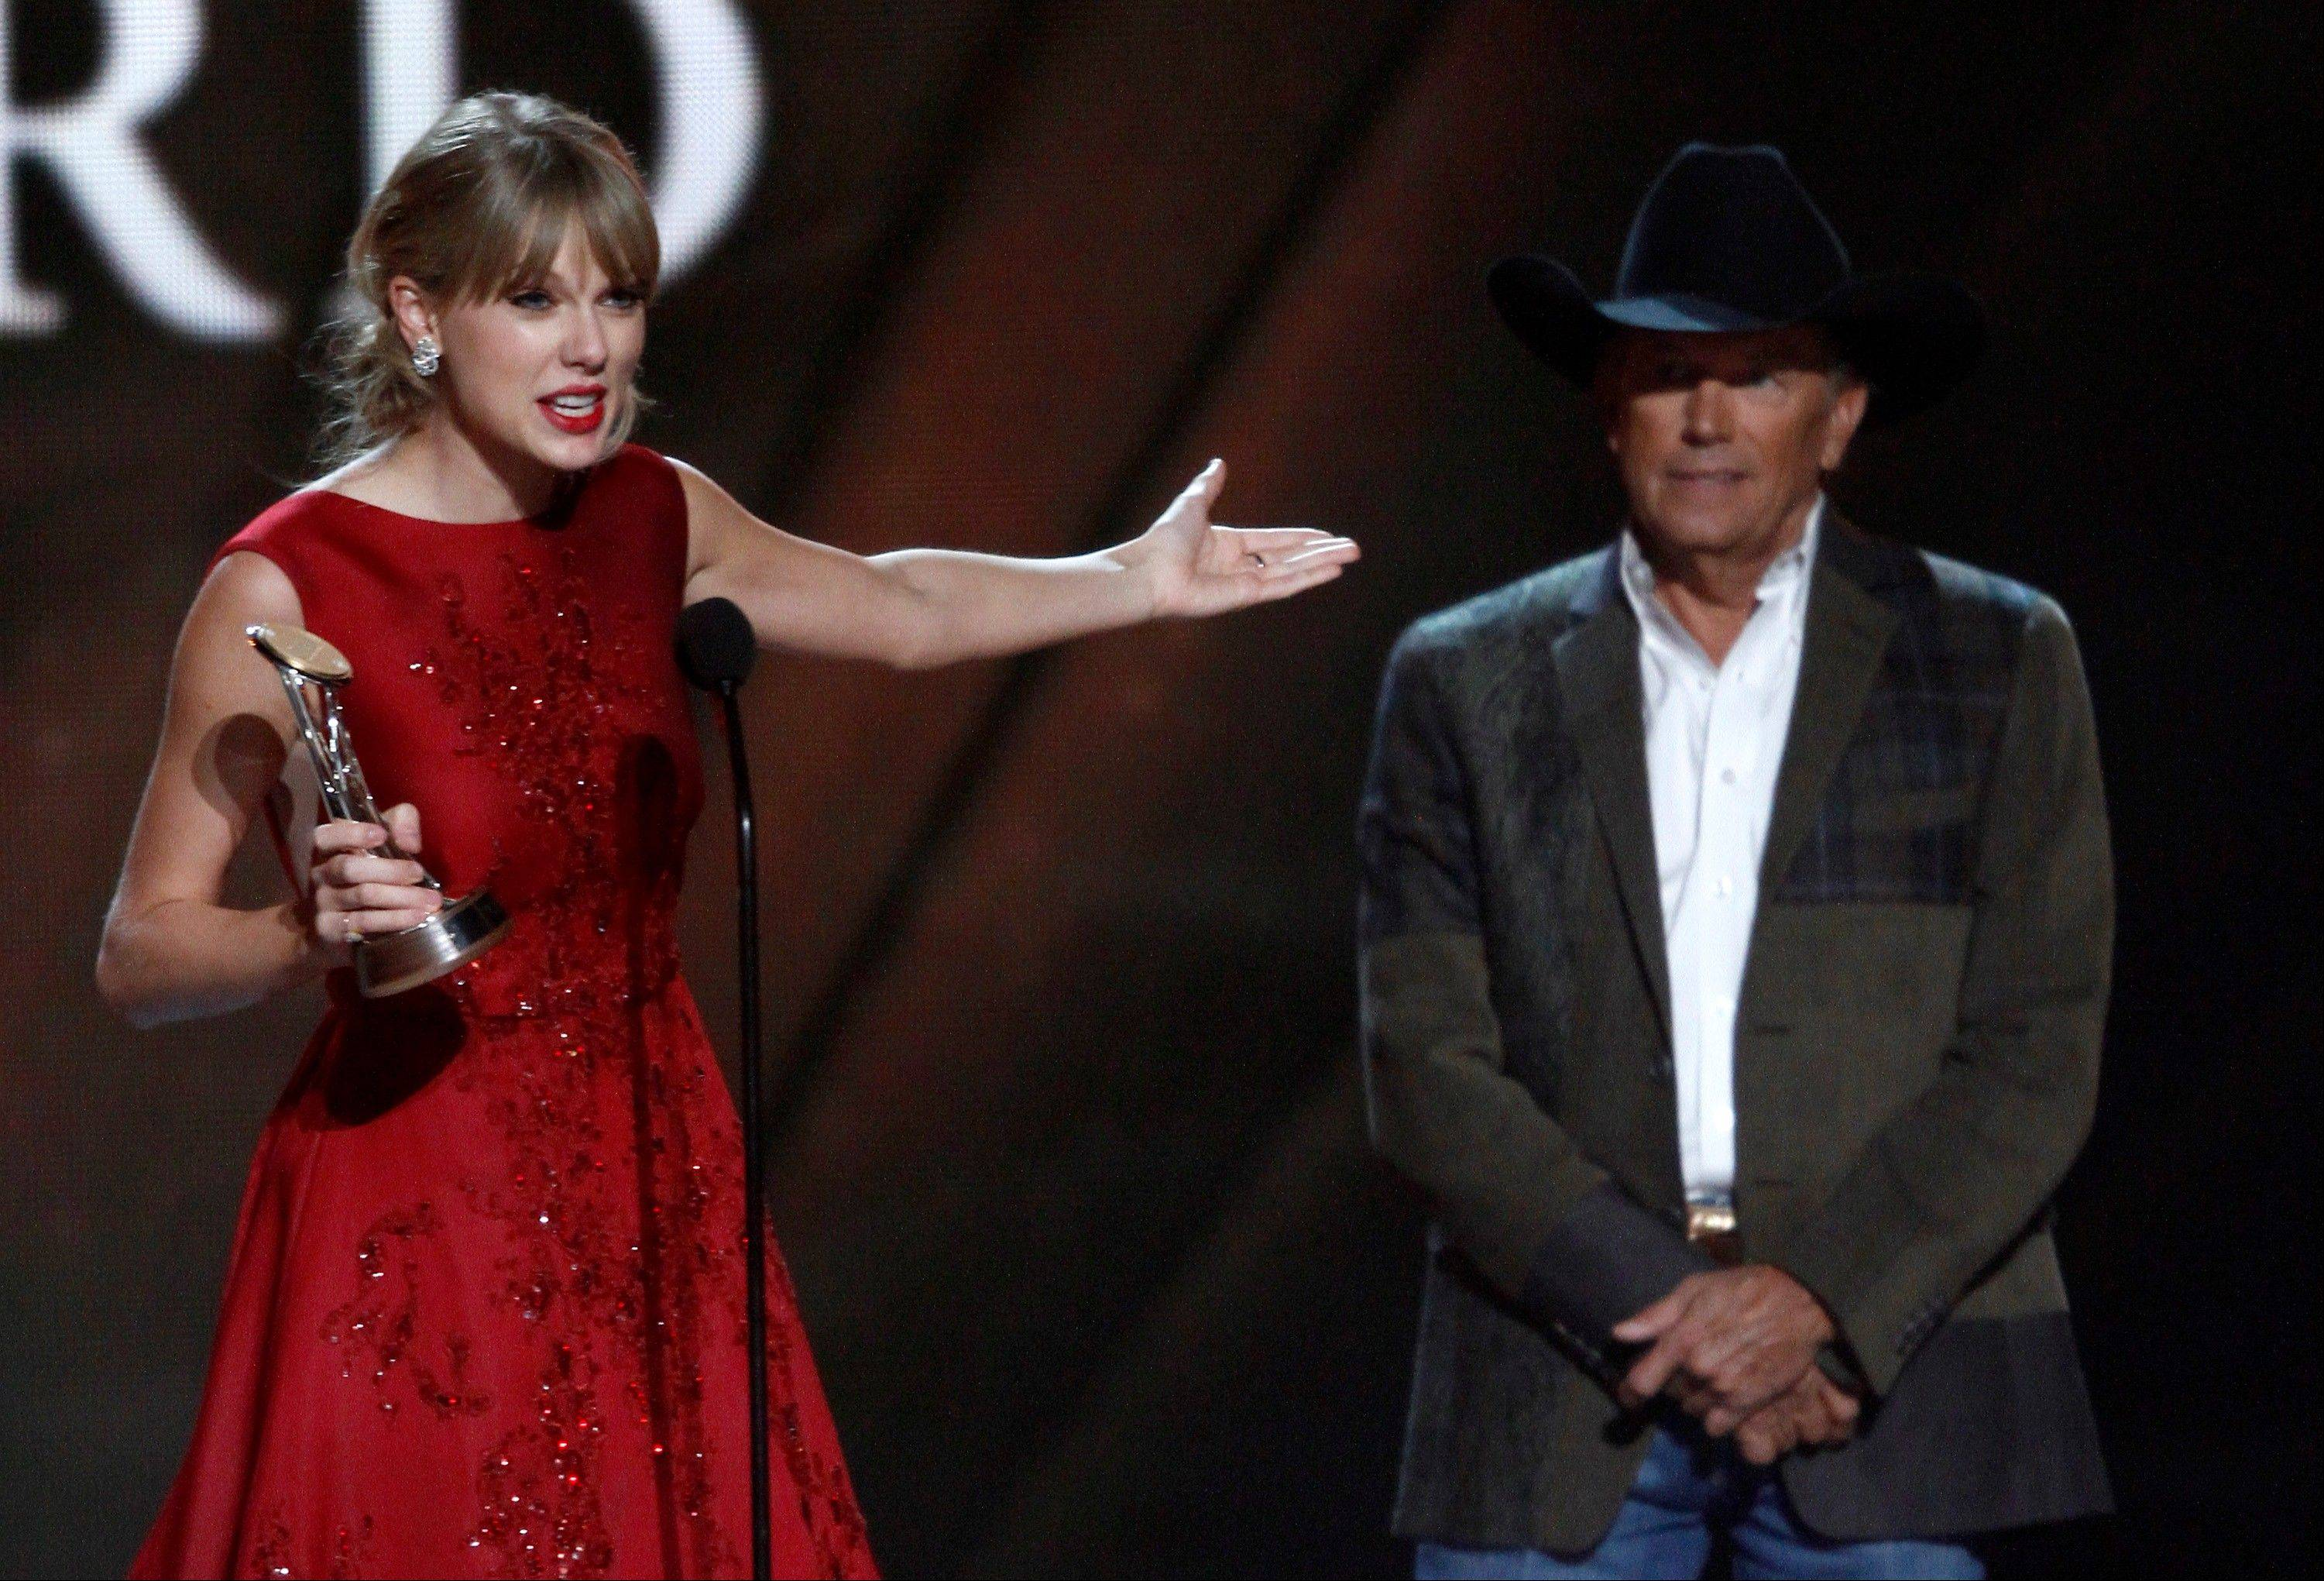 Taylor Swift accepts the Pinnacle award Looking on at right is presenter George Strait.